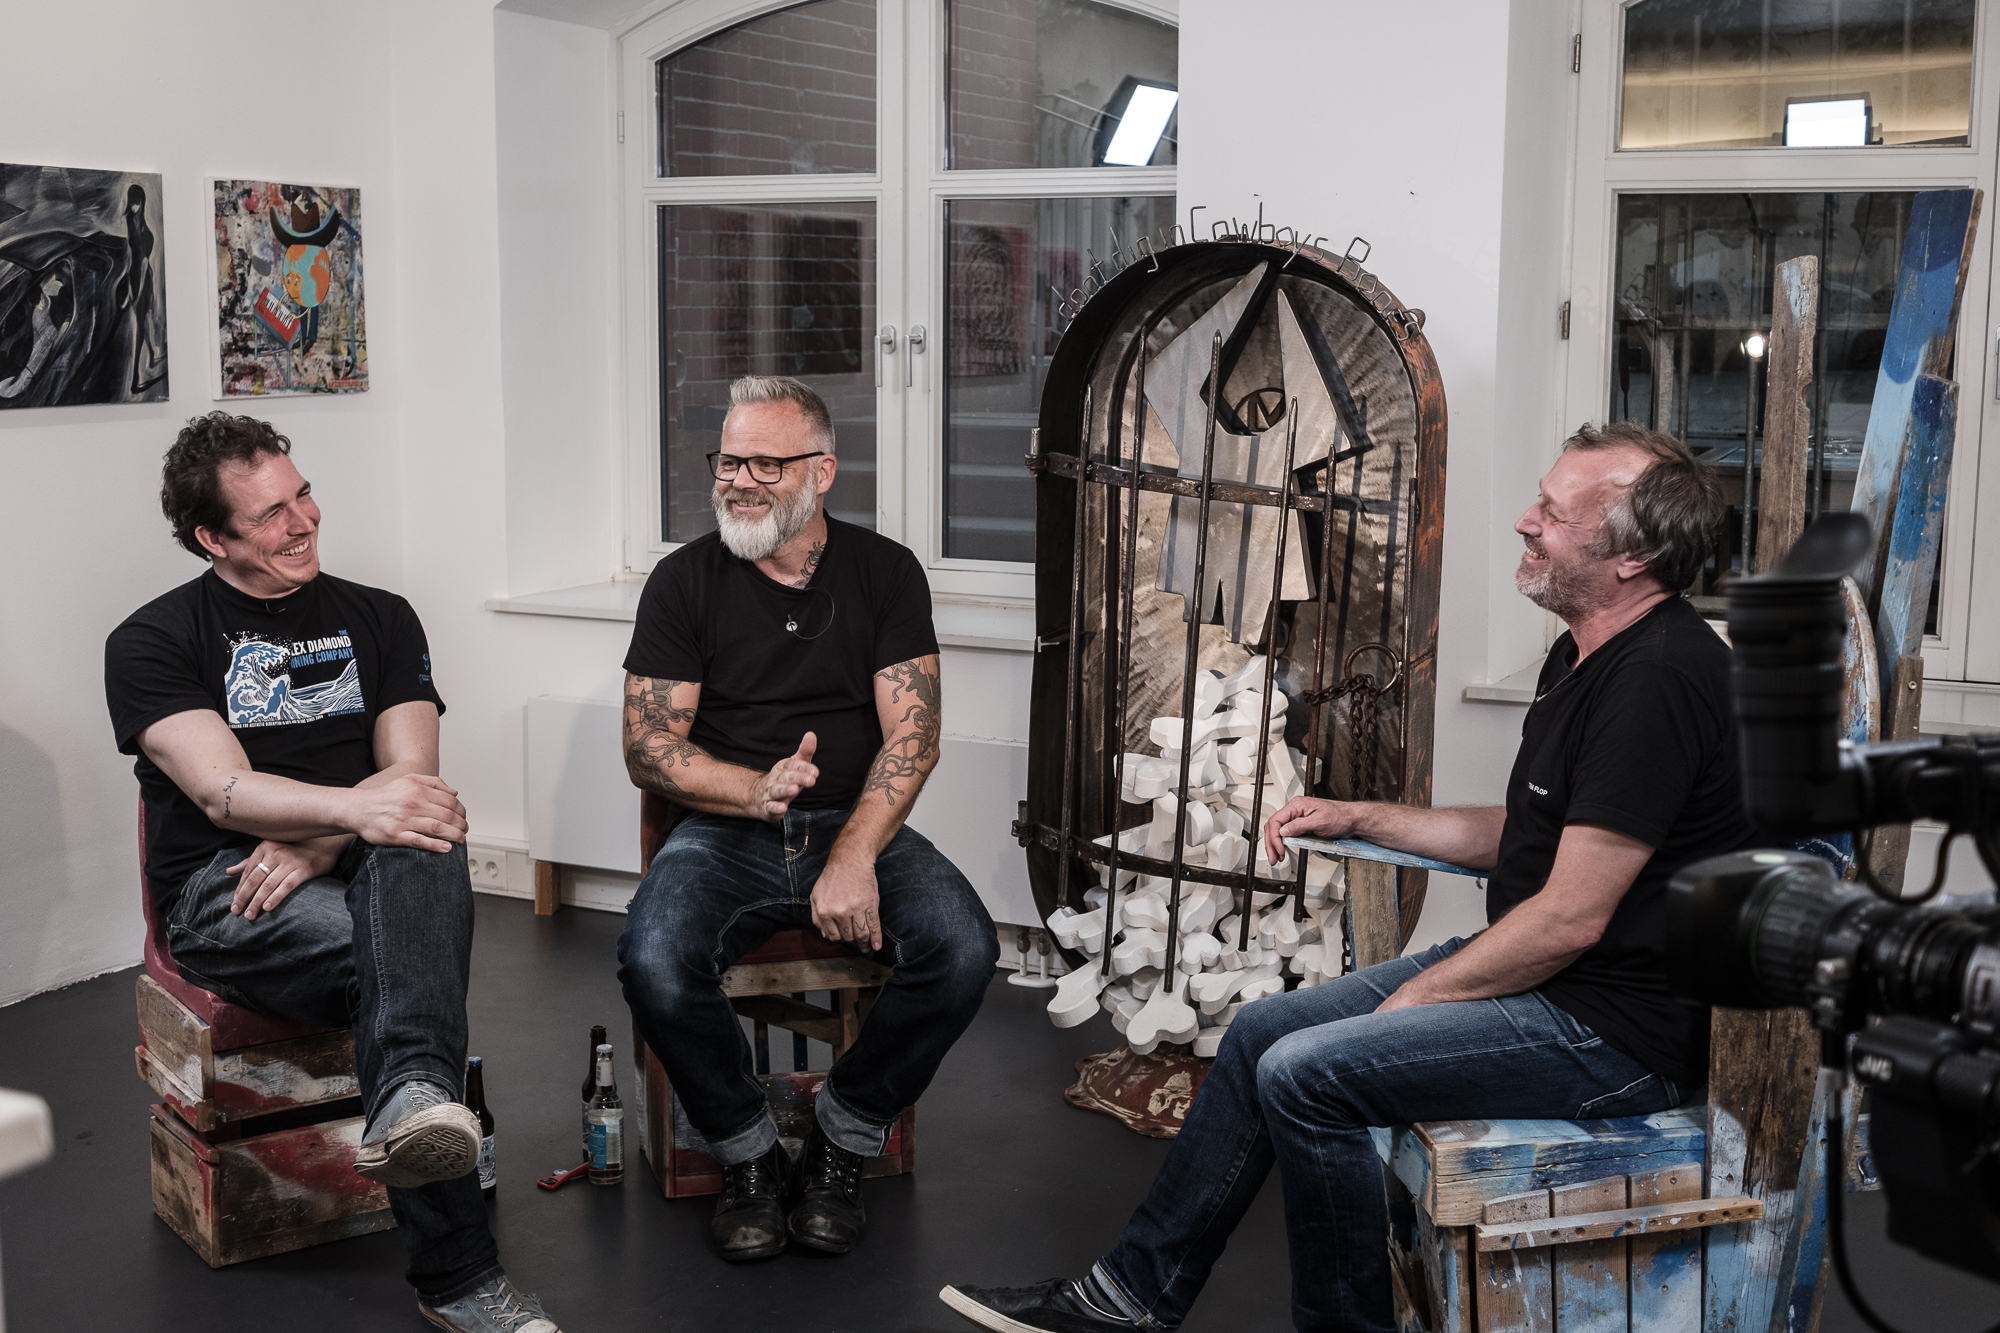 """heliumTALK TV-show at the gallery with (from left to right) Jannes Vahl, Jörg Heikhaus and Ralf Krüger, our guest in our """"COWBOYLAND - 15 years of heliumcowboy"""" special Summer 2017"""